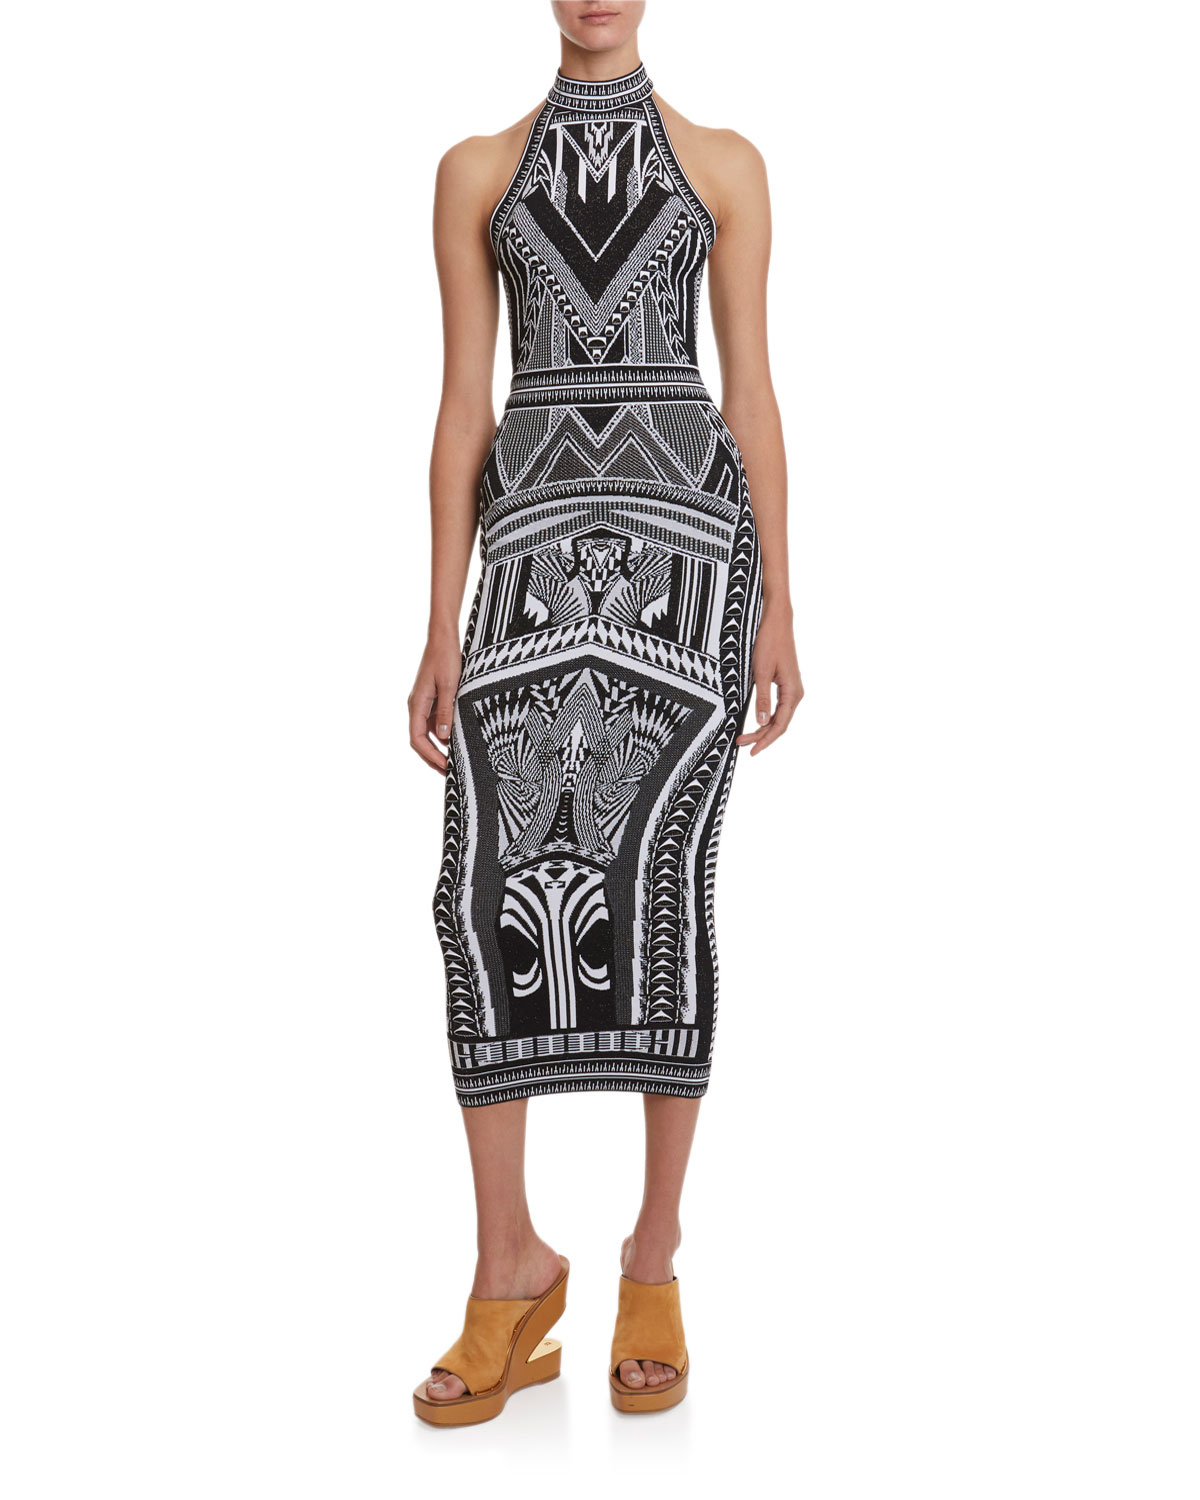 Balmain Halter Bodycon Jacquard Dress